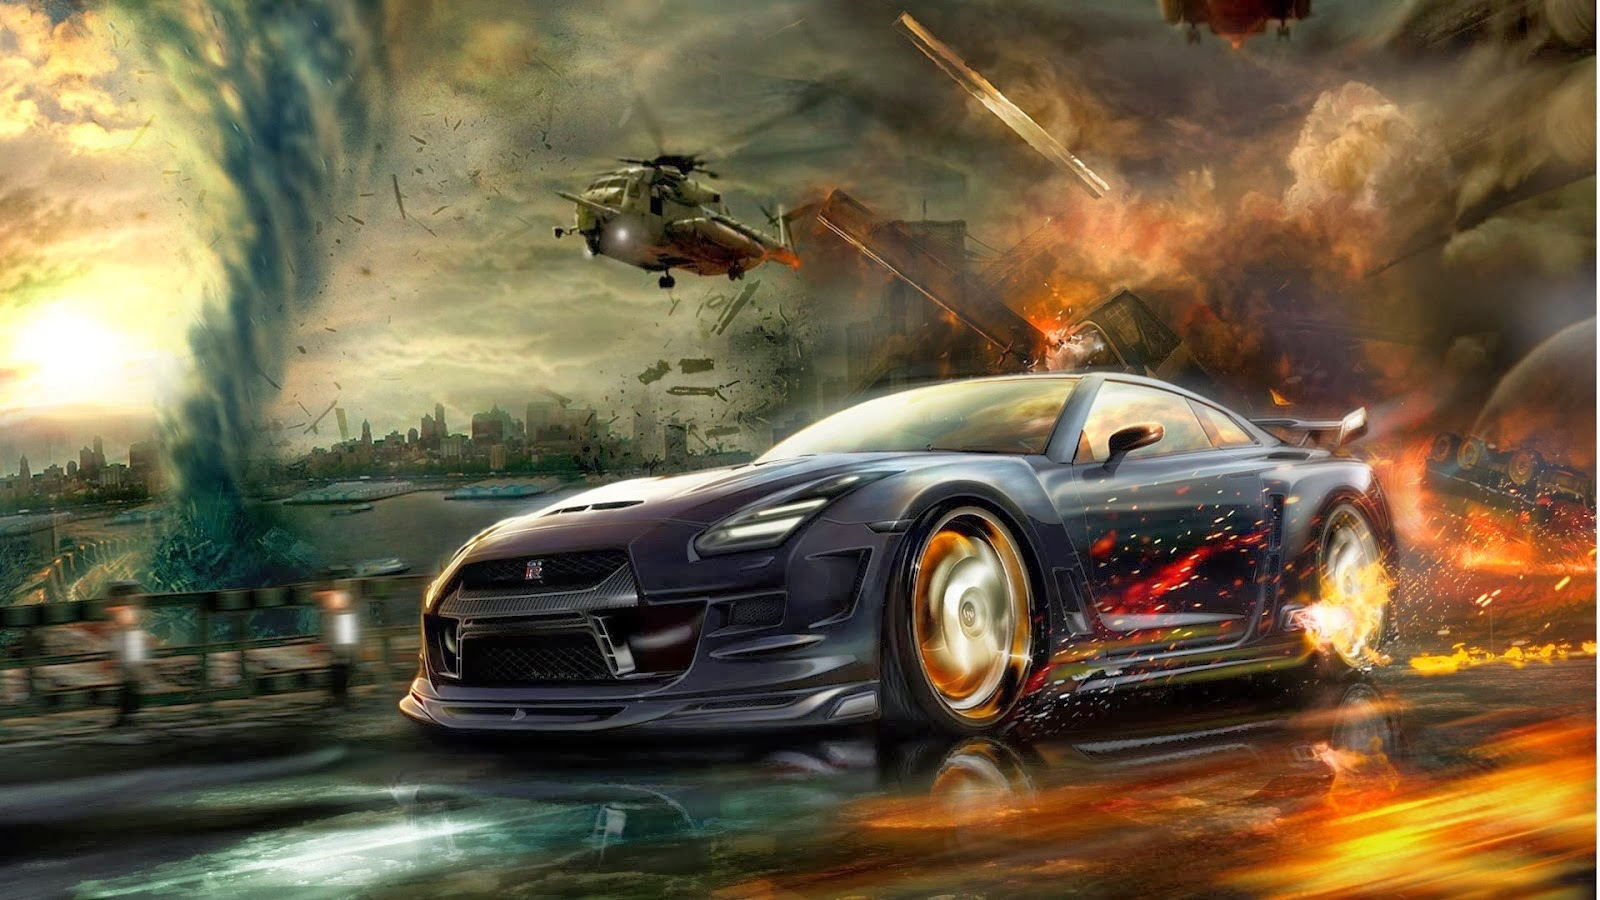 Car Wallpaper Desktop Pc 2014